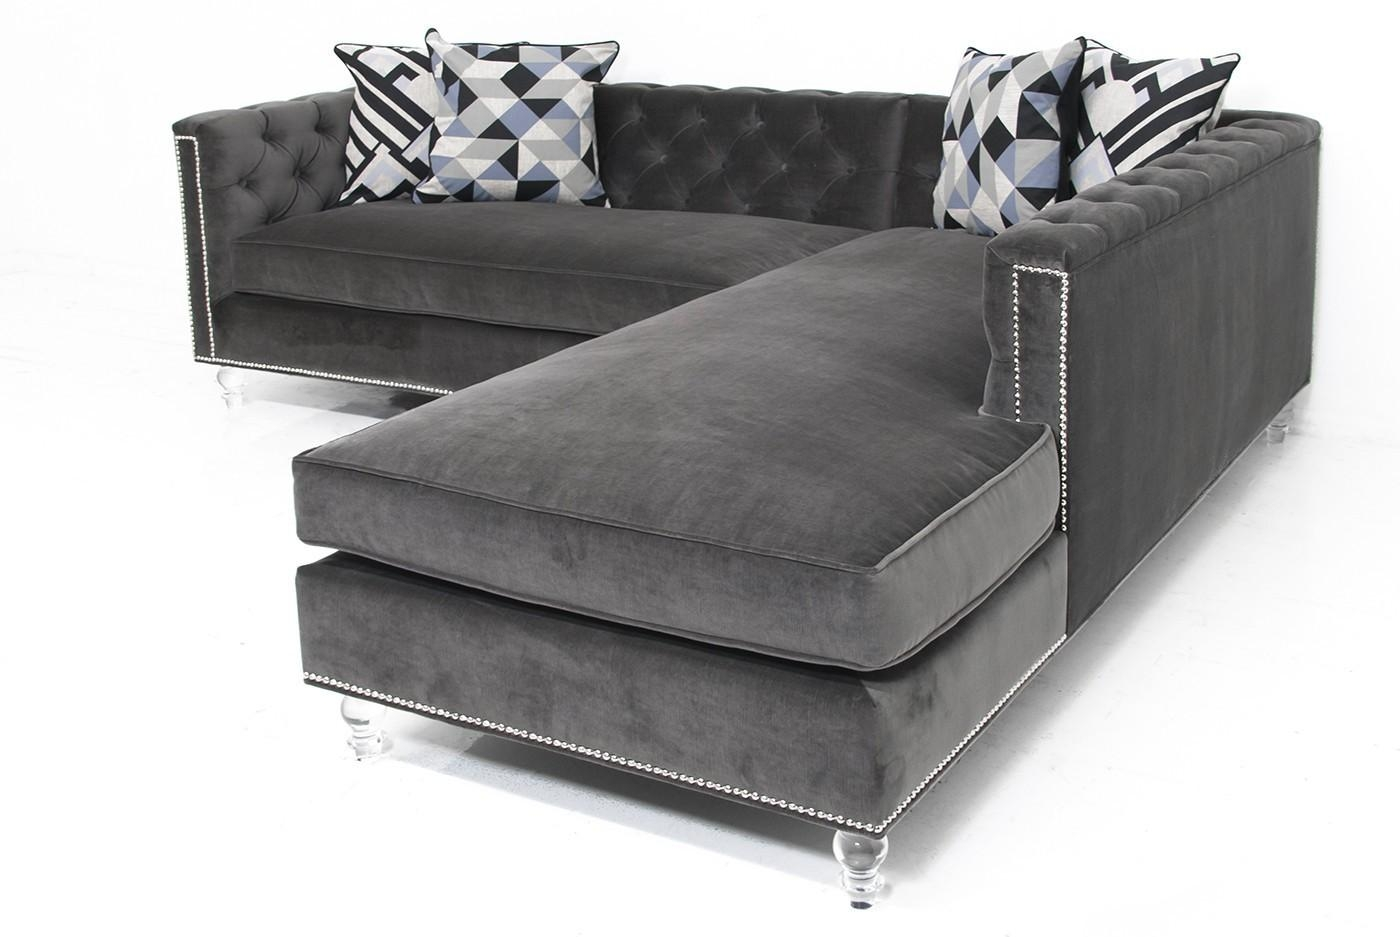 Sofa: Comfort And Style Is Evident In This Dynamic With Tufted Regarding Velvet Sofas Sectionals (View 13 of 20)